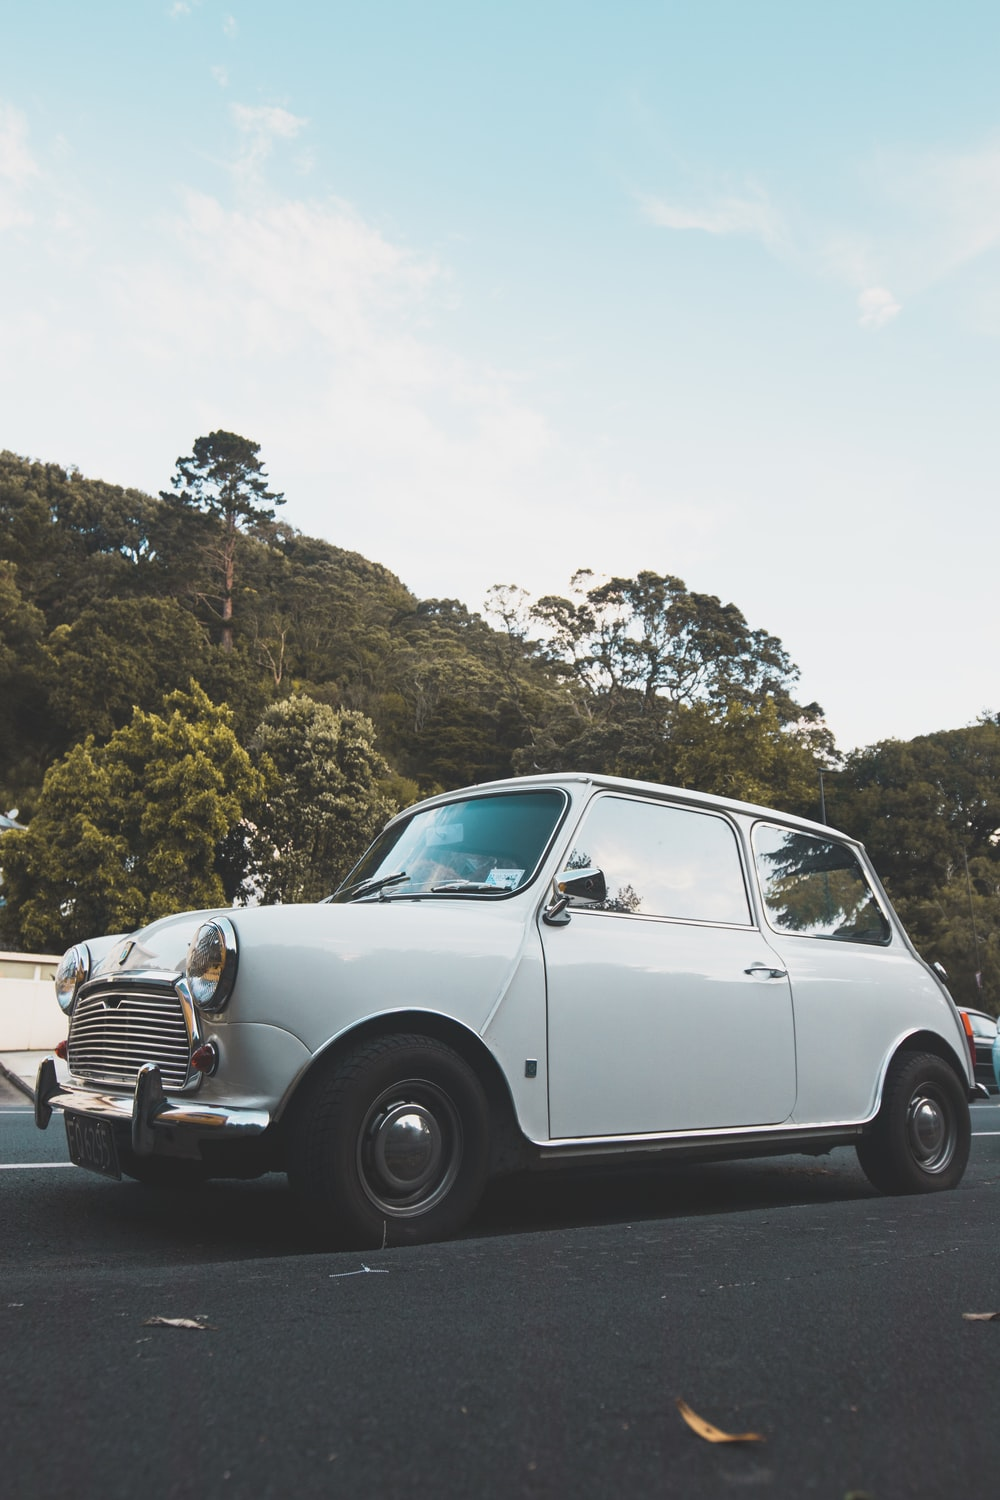 white classic car travelling on the road